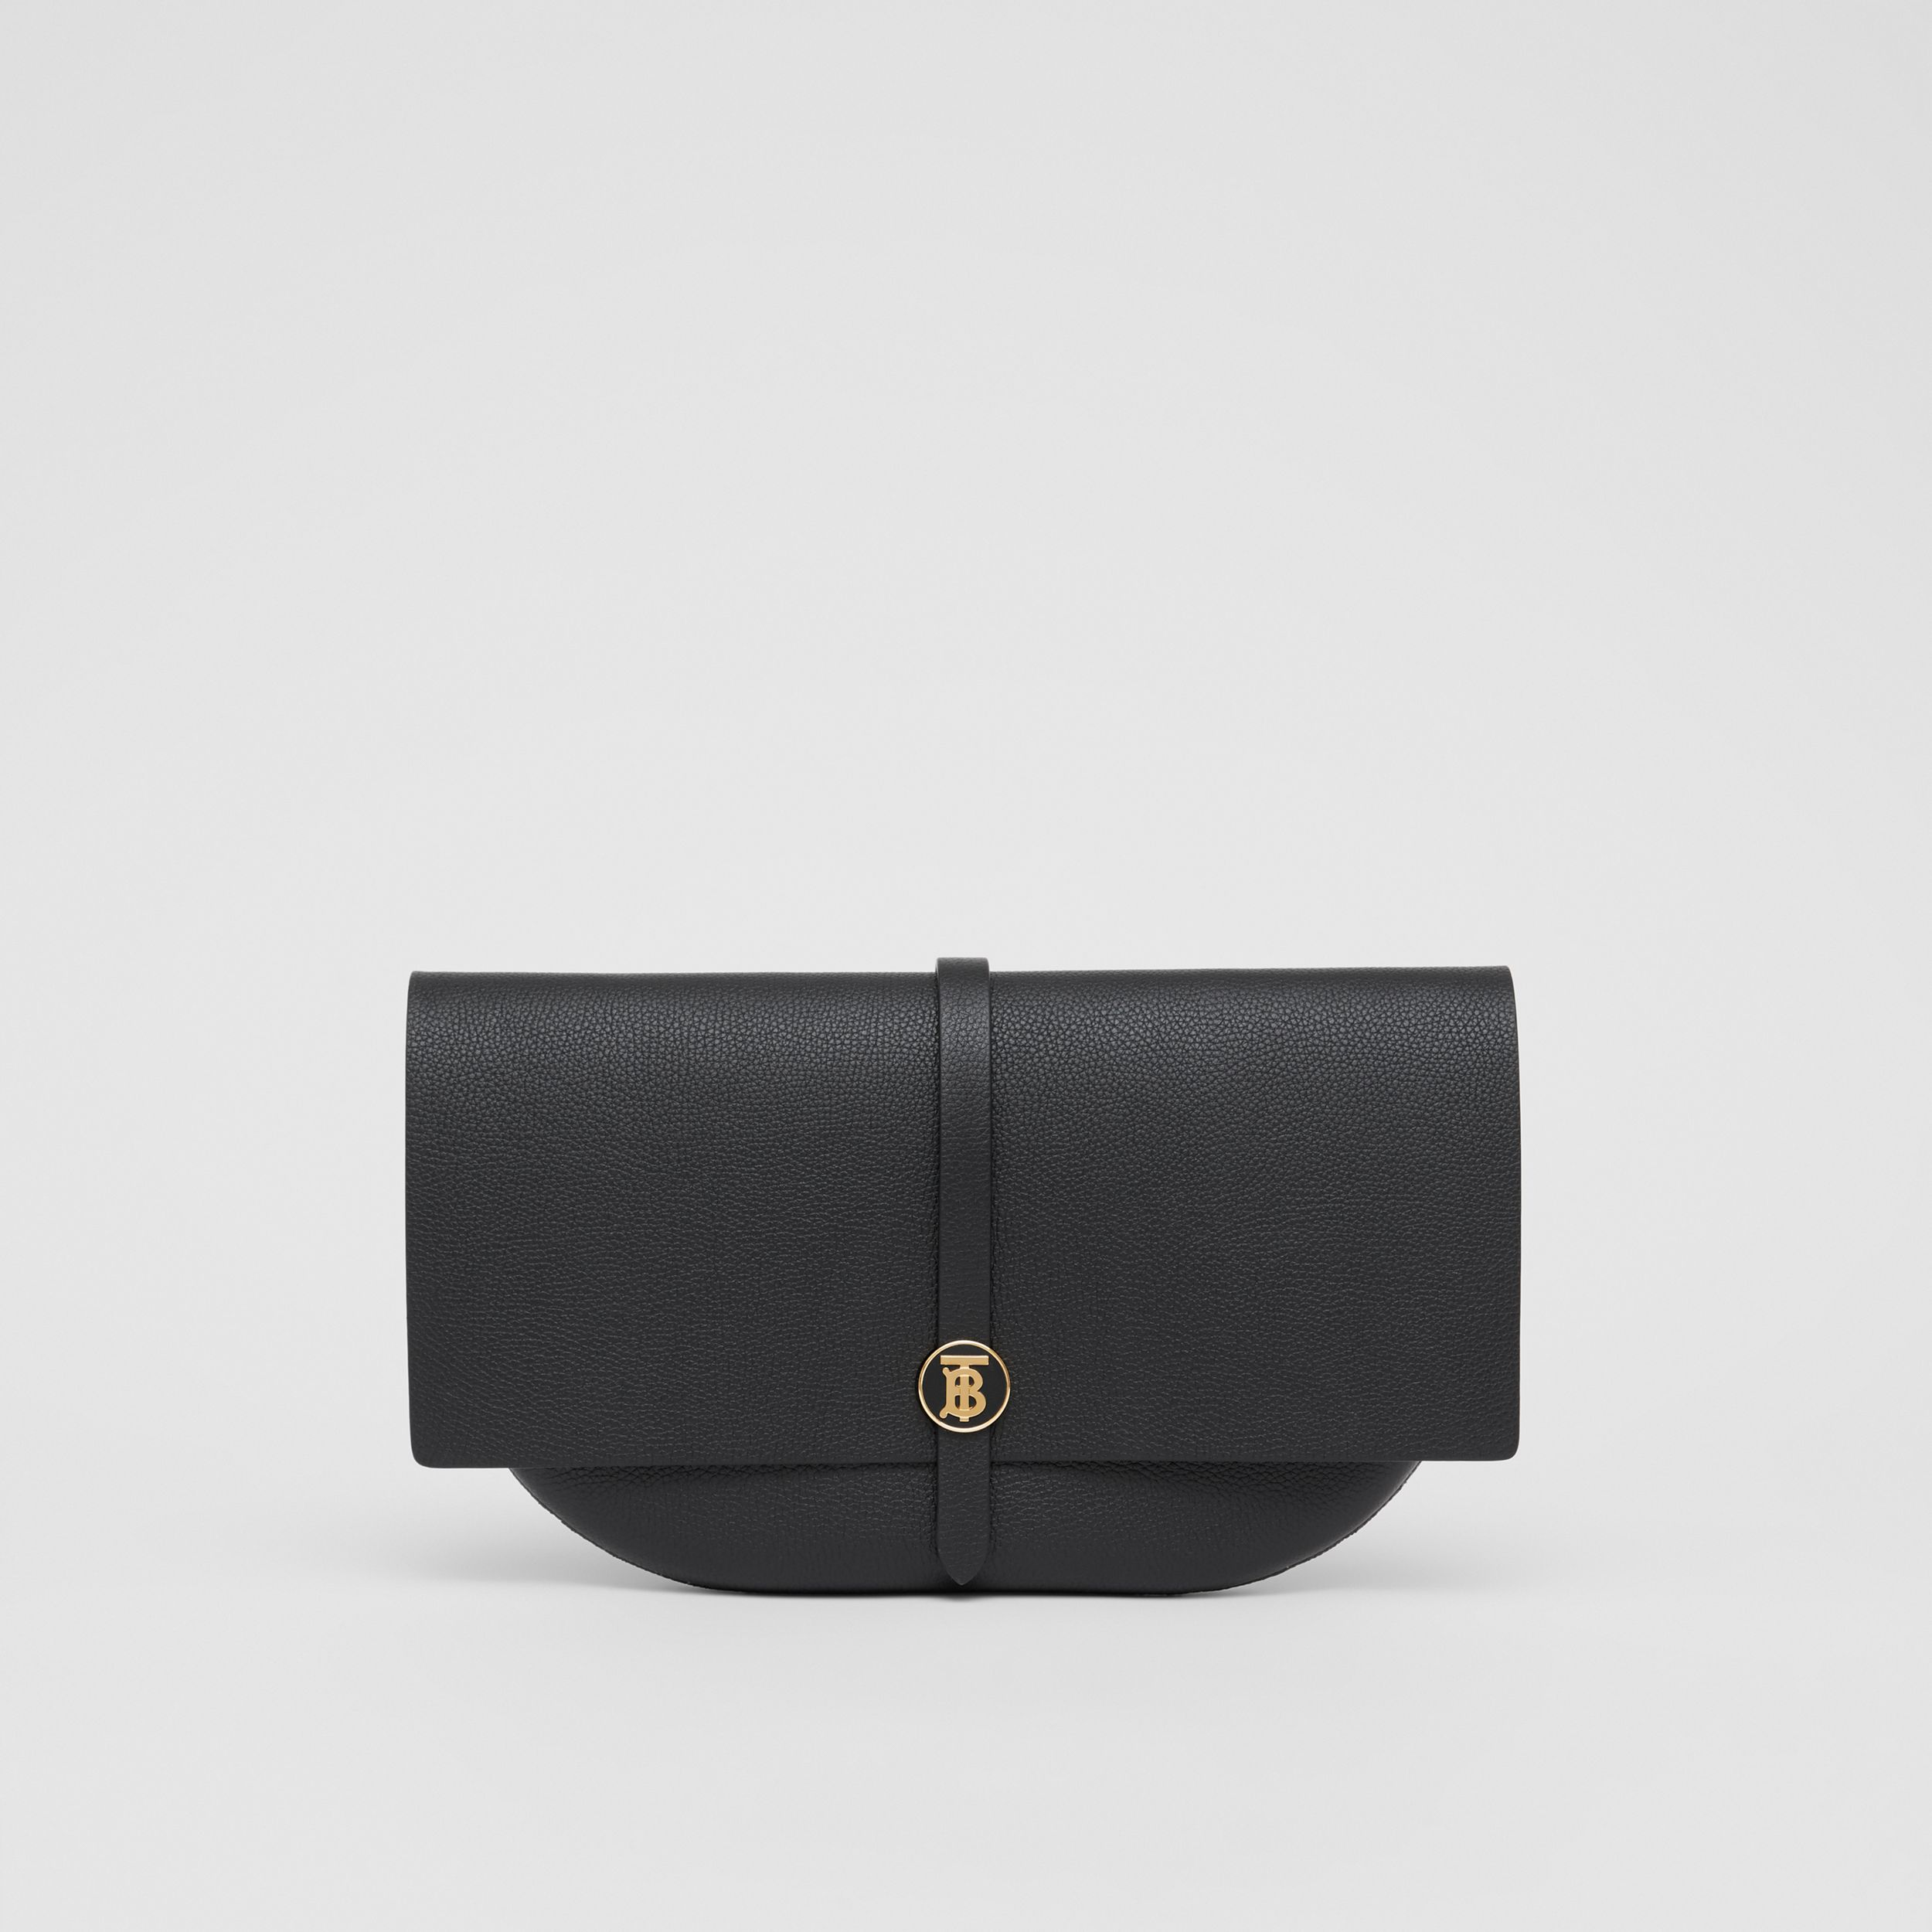 Grainy Leather Anne Clutch in Black - Women | Burberry - 1